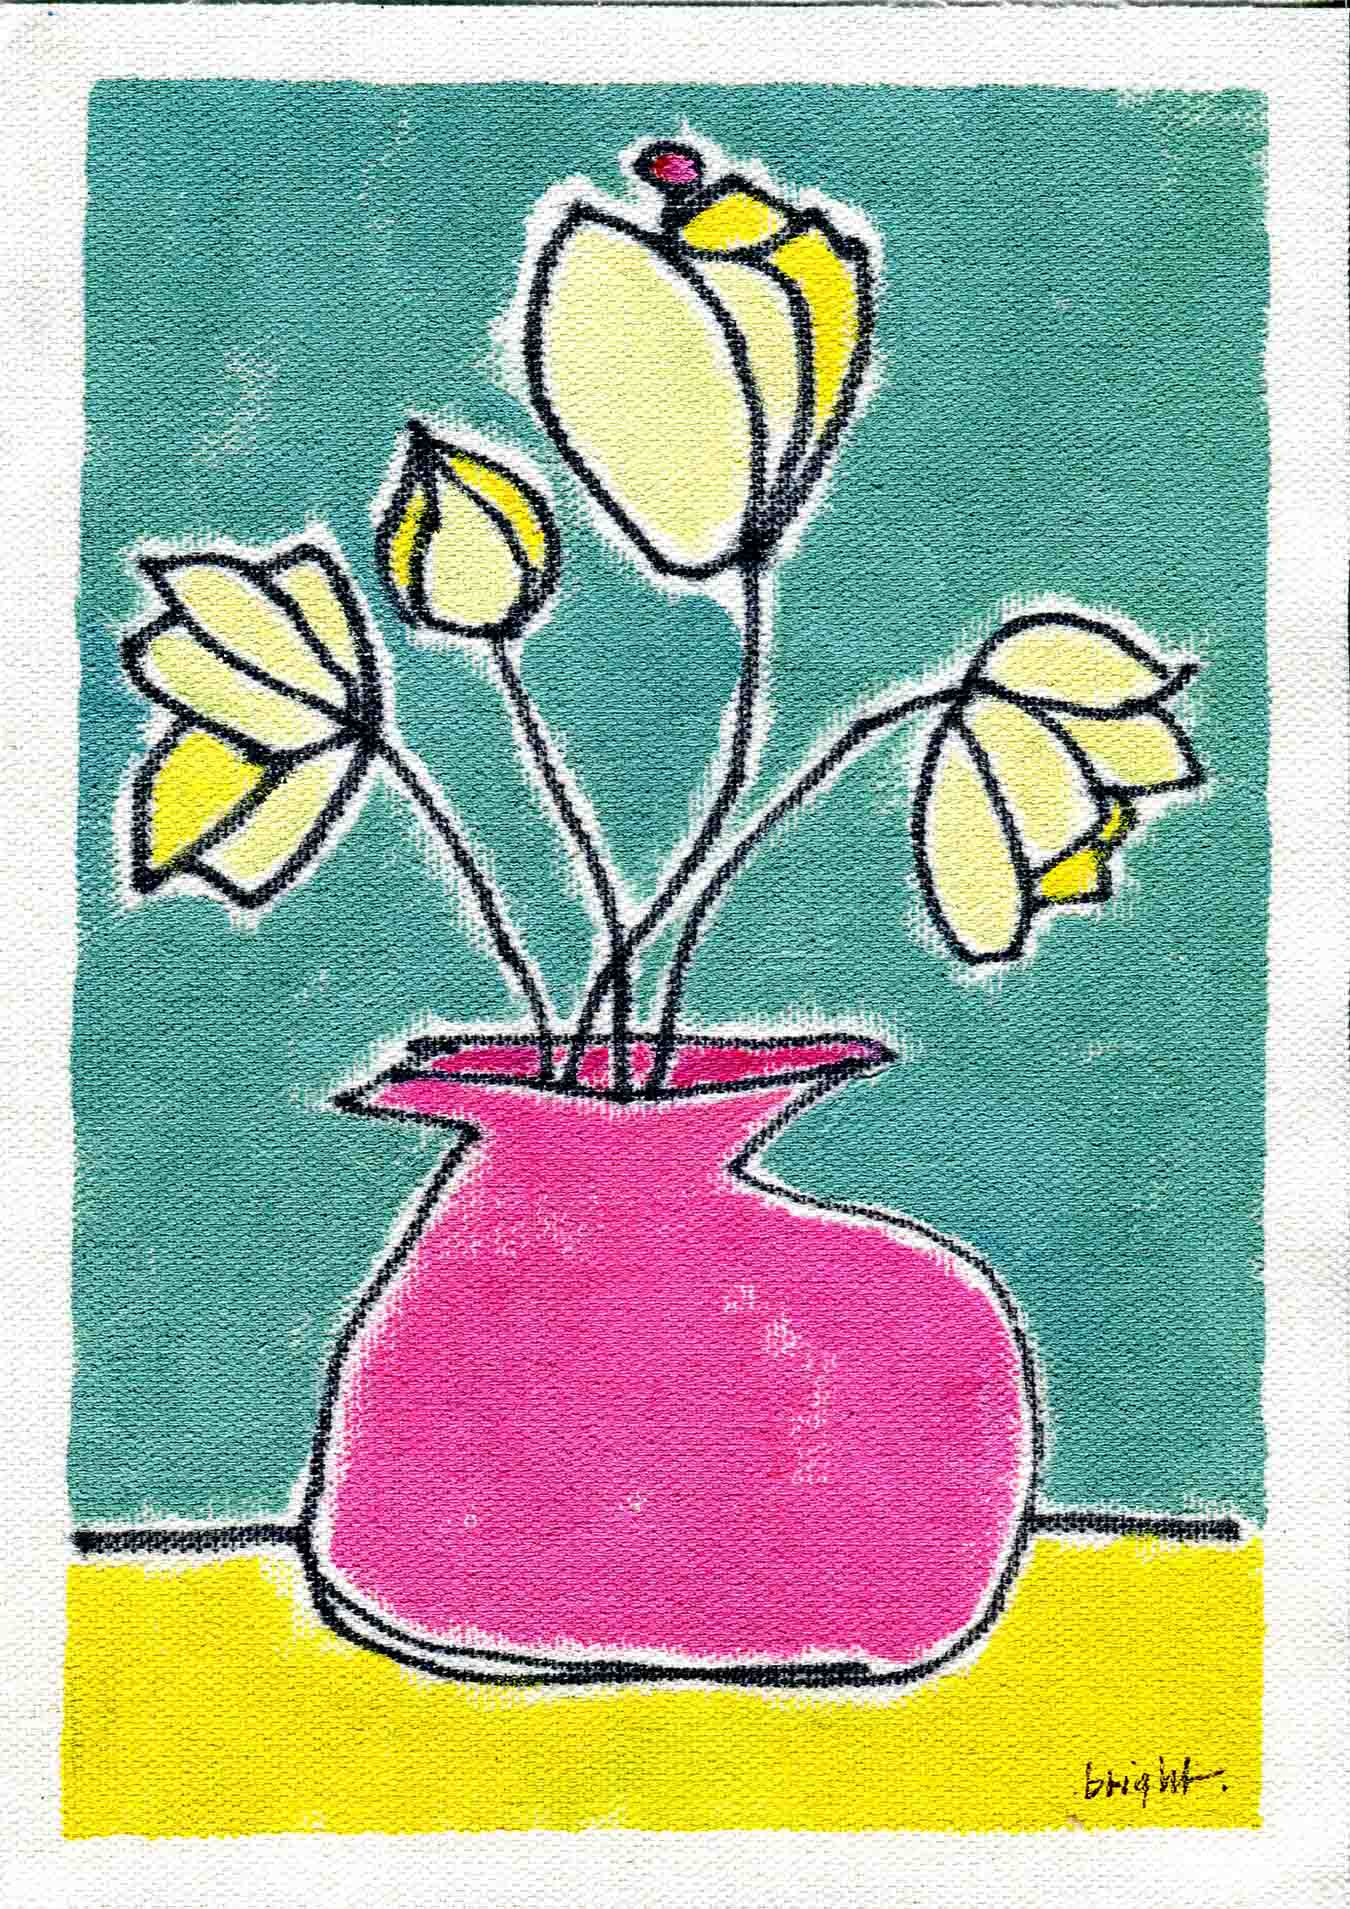 art every day number 137 yellow pink blue flowers in vase colour video